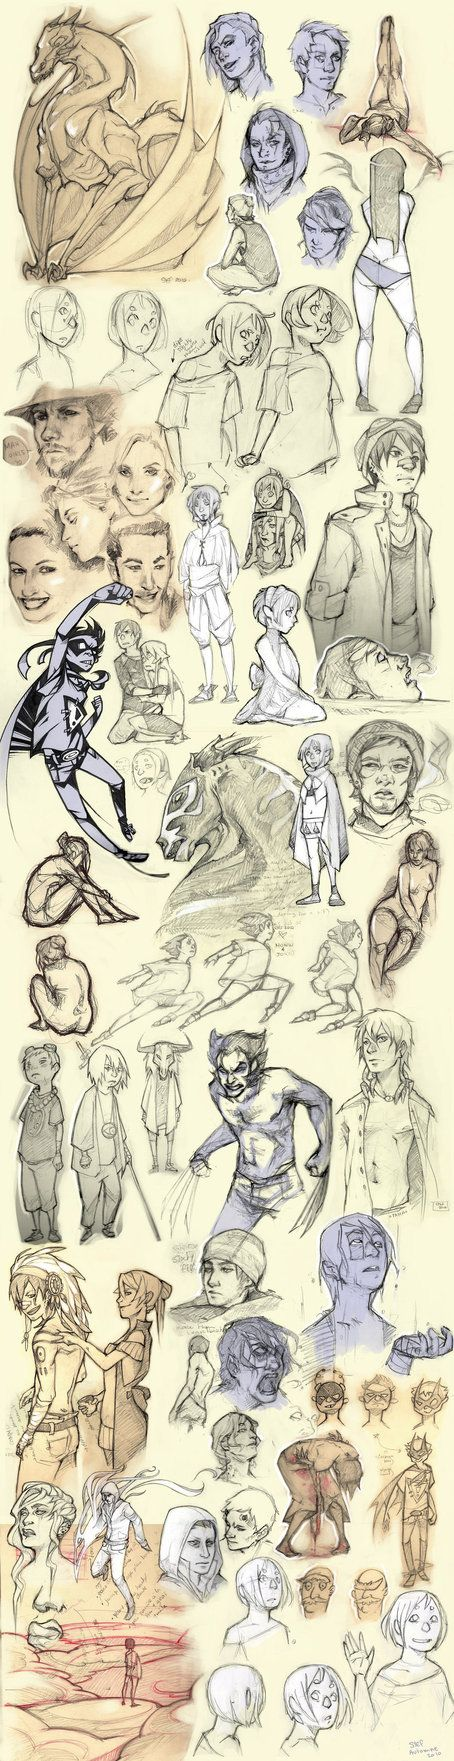 Here is a really awesome sketch dump by frizz-bee on deviantART